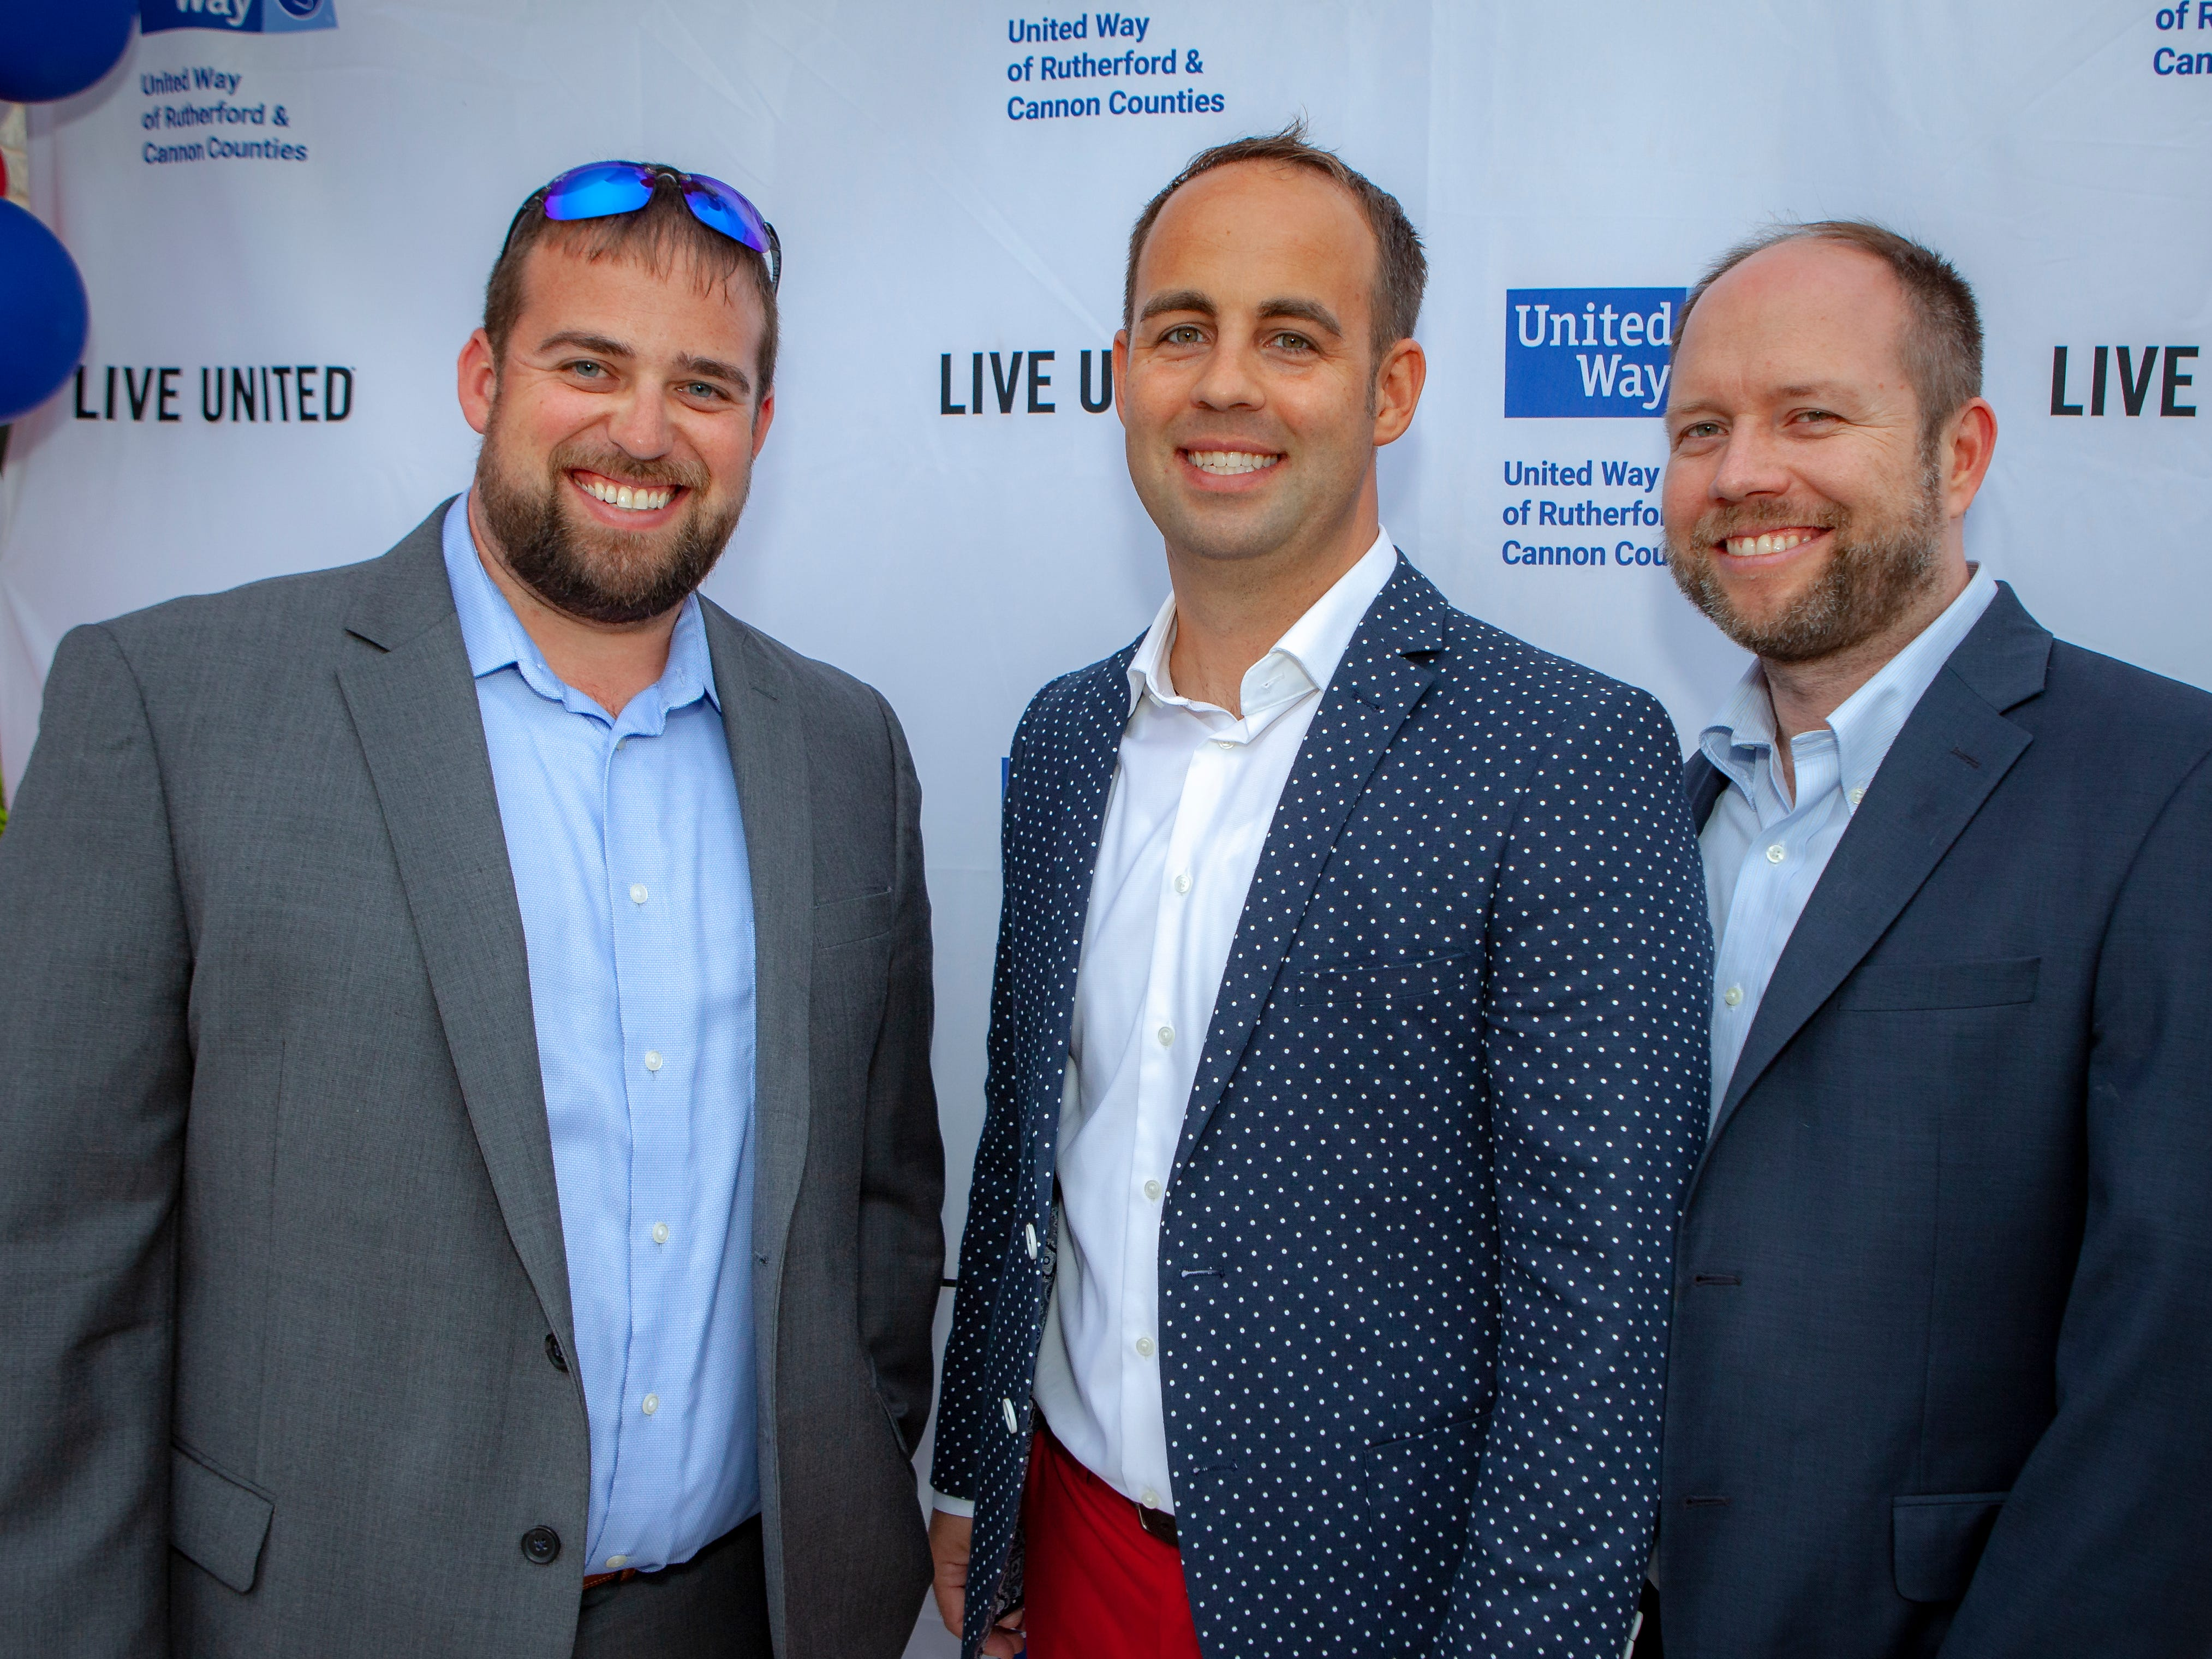 Josh Kirby, Jay Cash and Chris Canary enjoyed a Cajun feast under the stars at United Way's Red, White and Bayou, held Friday, May 10, 2019 at the home of Jimmy & Nikkole Aho.